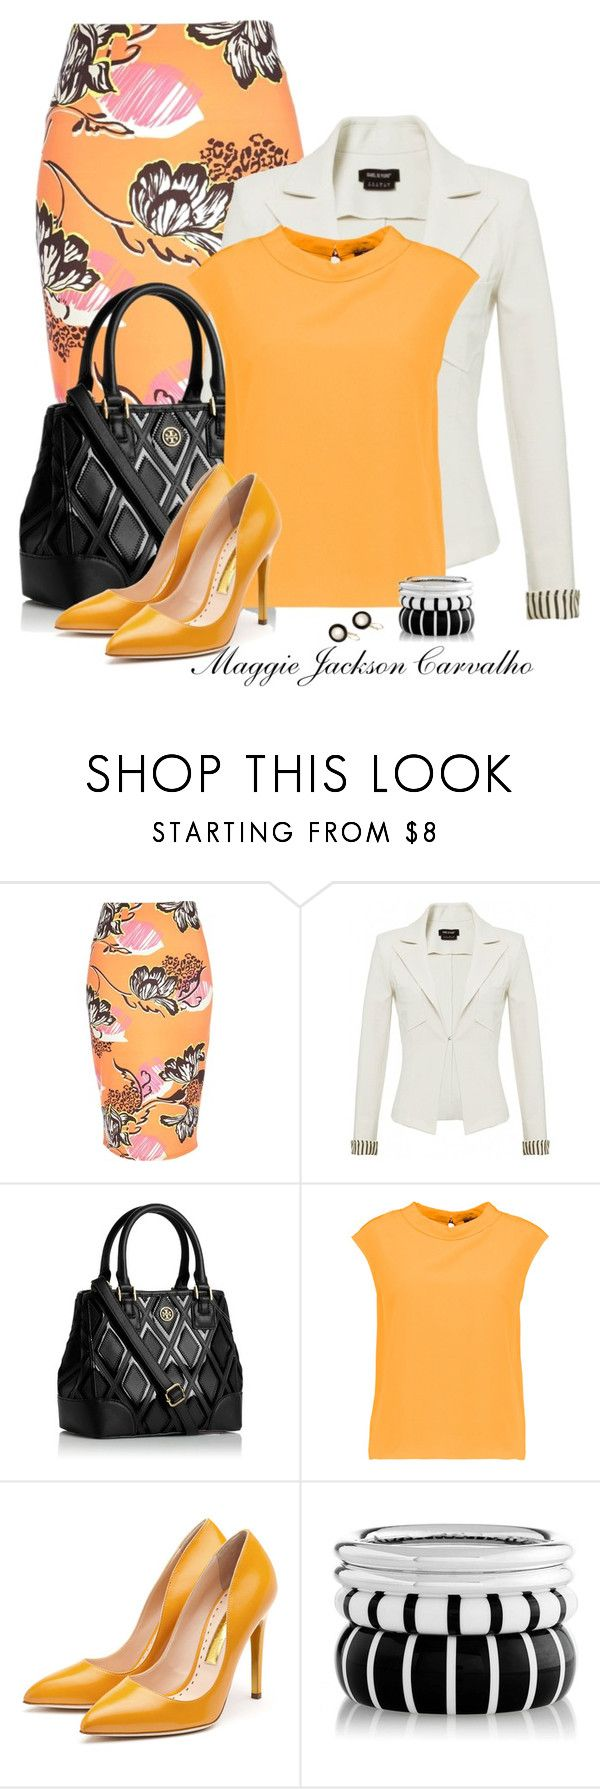 """ SPRING FEVER: Colorful Pumps "" by maggie-jackson-carvalho on Polyvore featuring River Island, Isabel de Pedro, Tory Burch, Raoul, Rupert Sanderson and Wallis"